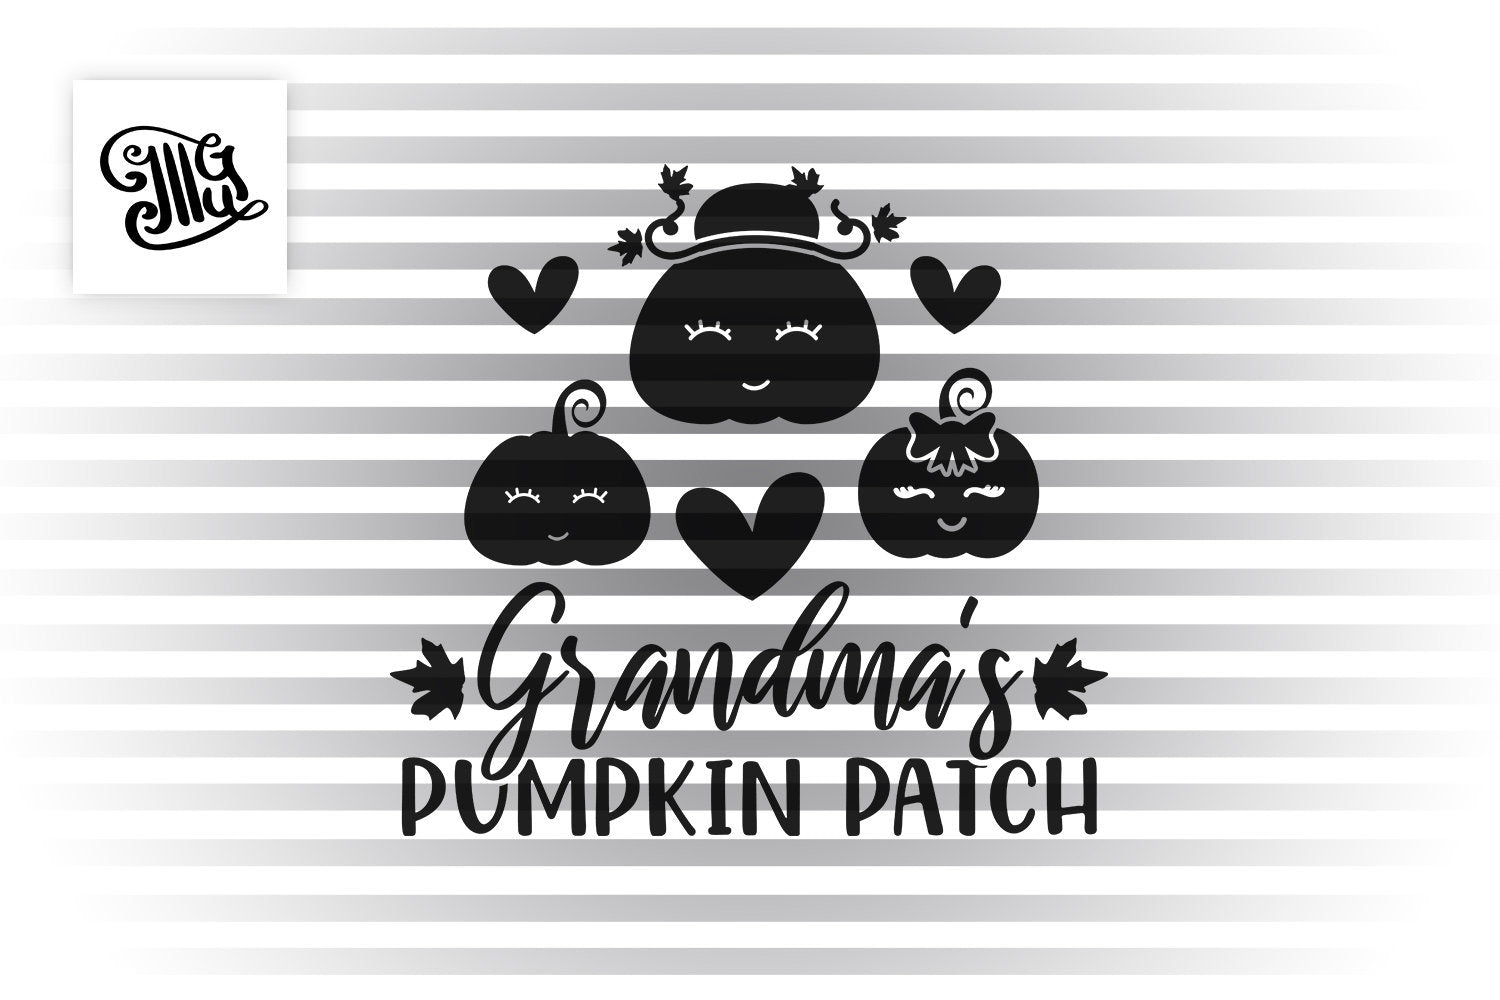 Grandma S Pumpkin Patch Svg Pumpkin Grandma Svg Pumpkin Kids Svg Pu Illustrator Guru